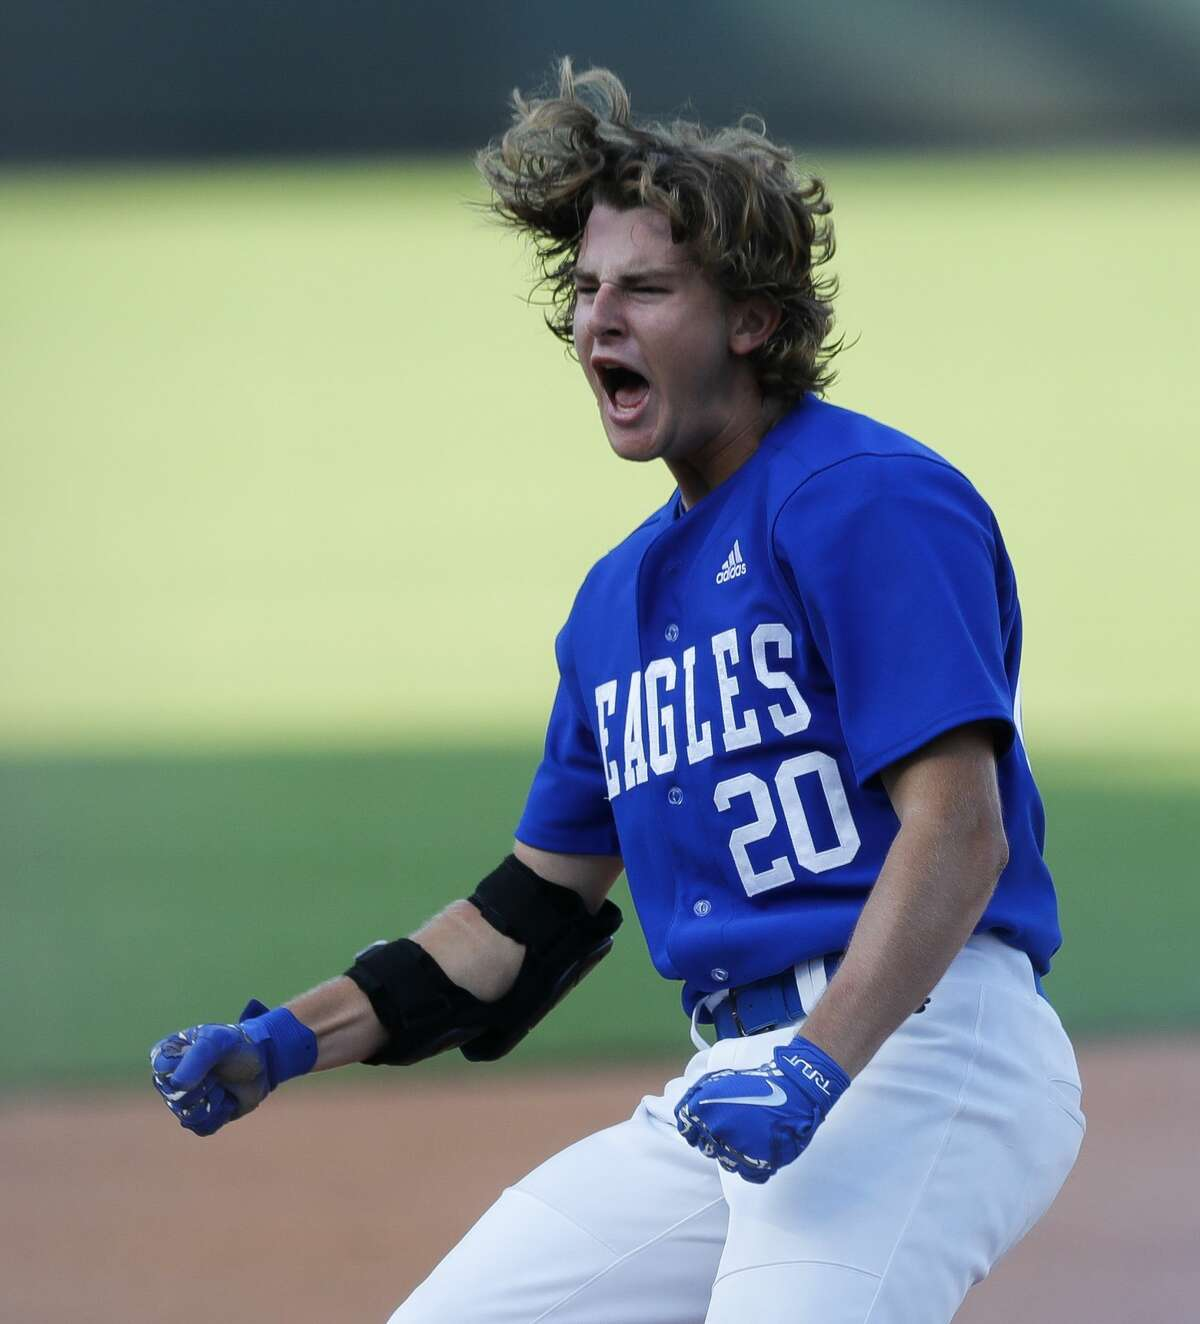 Blaine Huntley #20 of Barbers Hill reacts after hitting an RBI triple in the sixth inning of a Class 5A state semifinal game during the UIL State Baseball Championships at Dell Diamond, Thursday, June 10, 2021, in Round Rock.